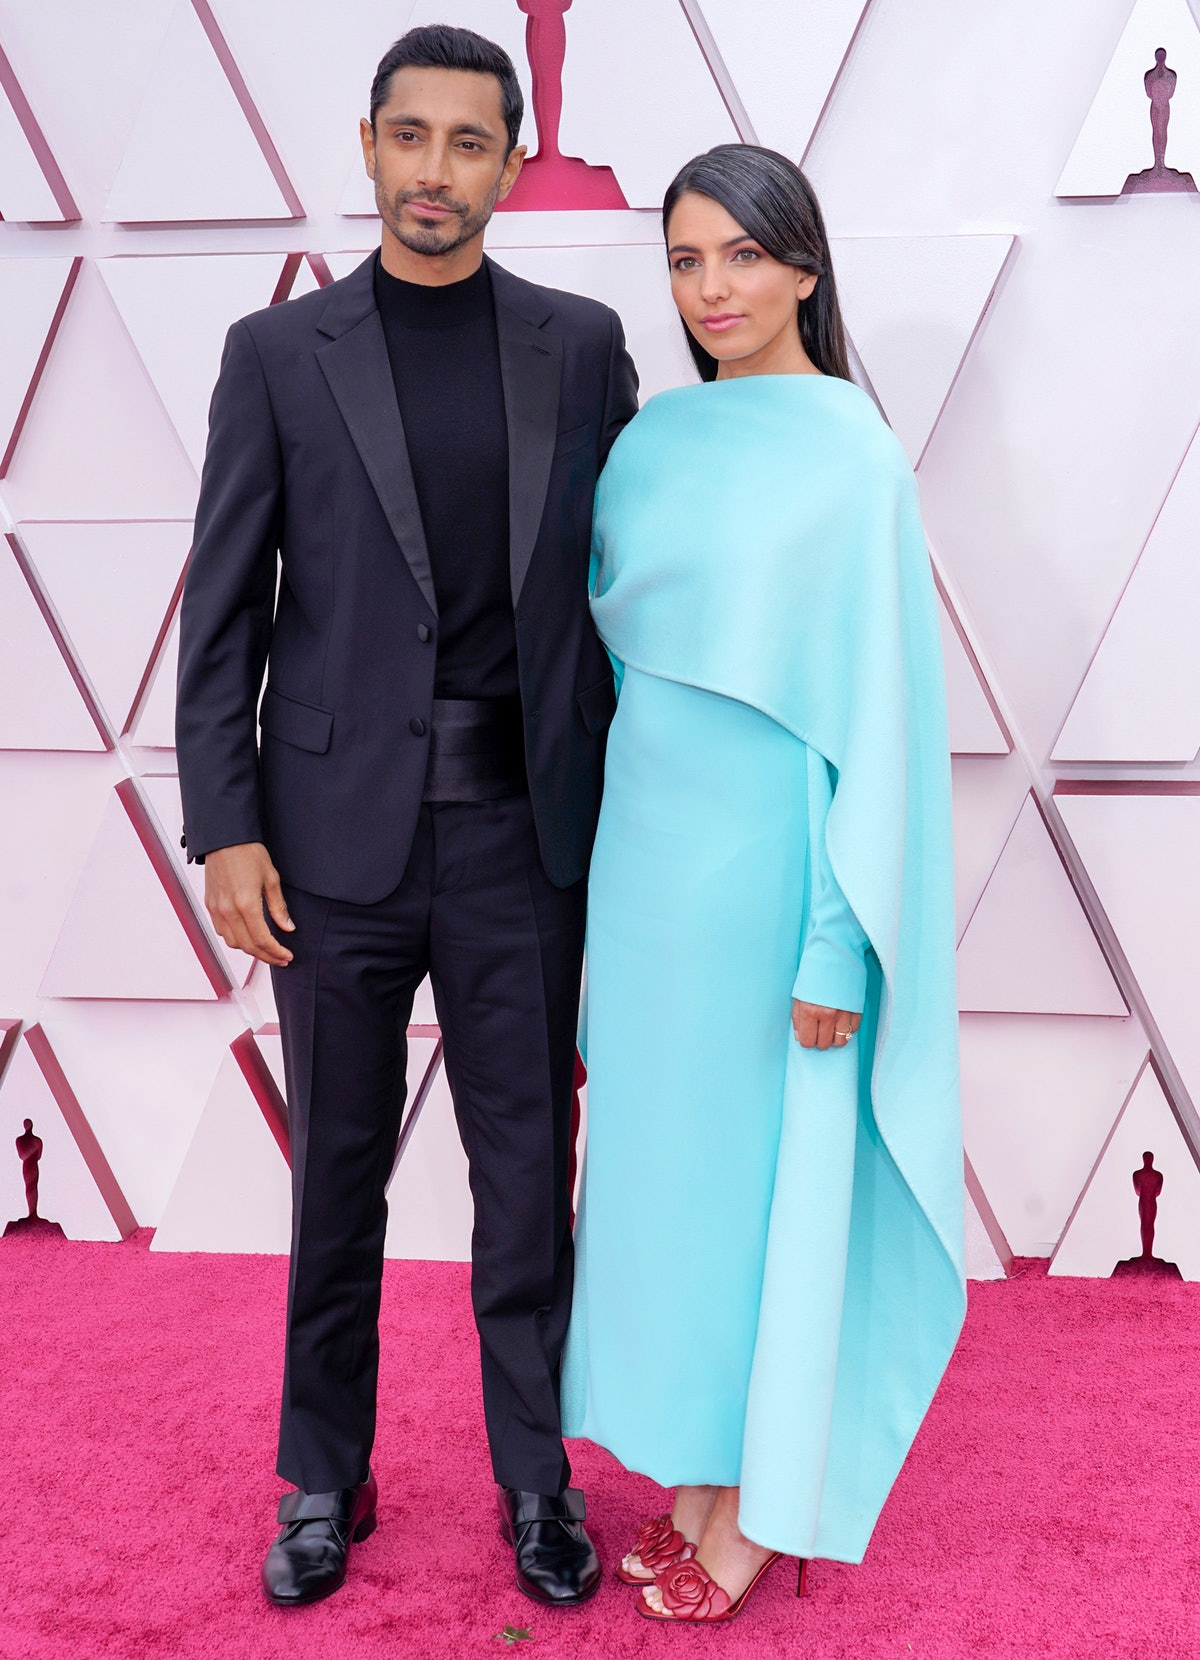 LOS ANGELES, CALIFORNIA – APRIL 25: (L-R) Riz Ahmed and Fatima Farheen Mirza attend the 93rd Annual Academy Awards at Union Station on April 25, 2021 in Los Angeles, California. (Photo by Chris Pizzello-Pool/Getty Images)